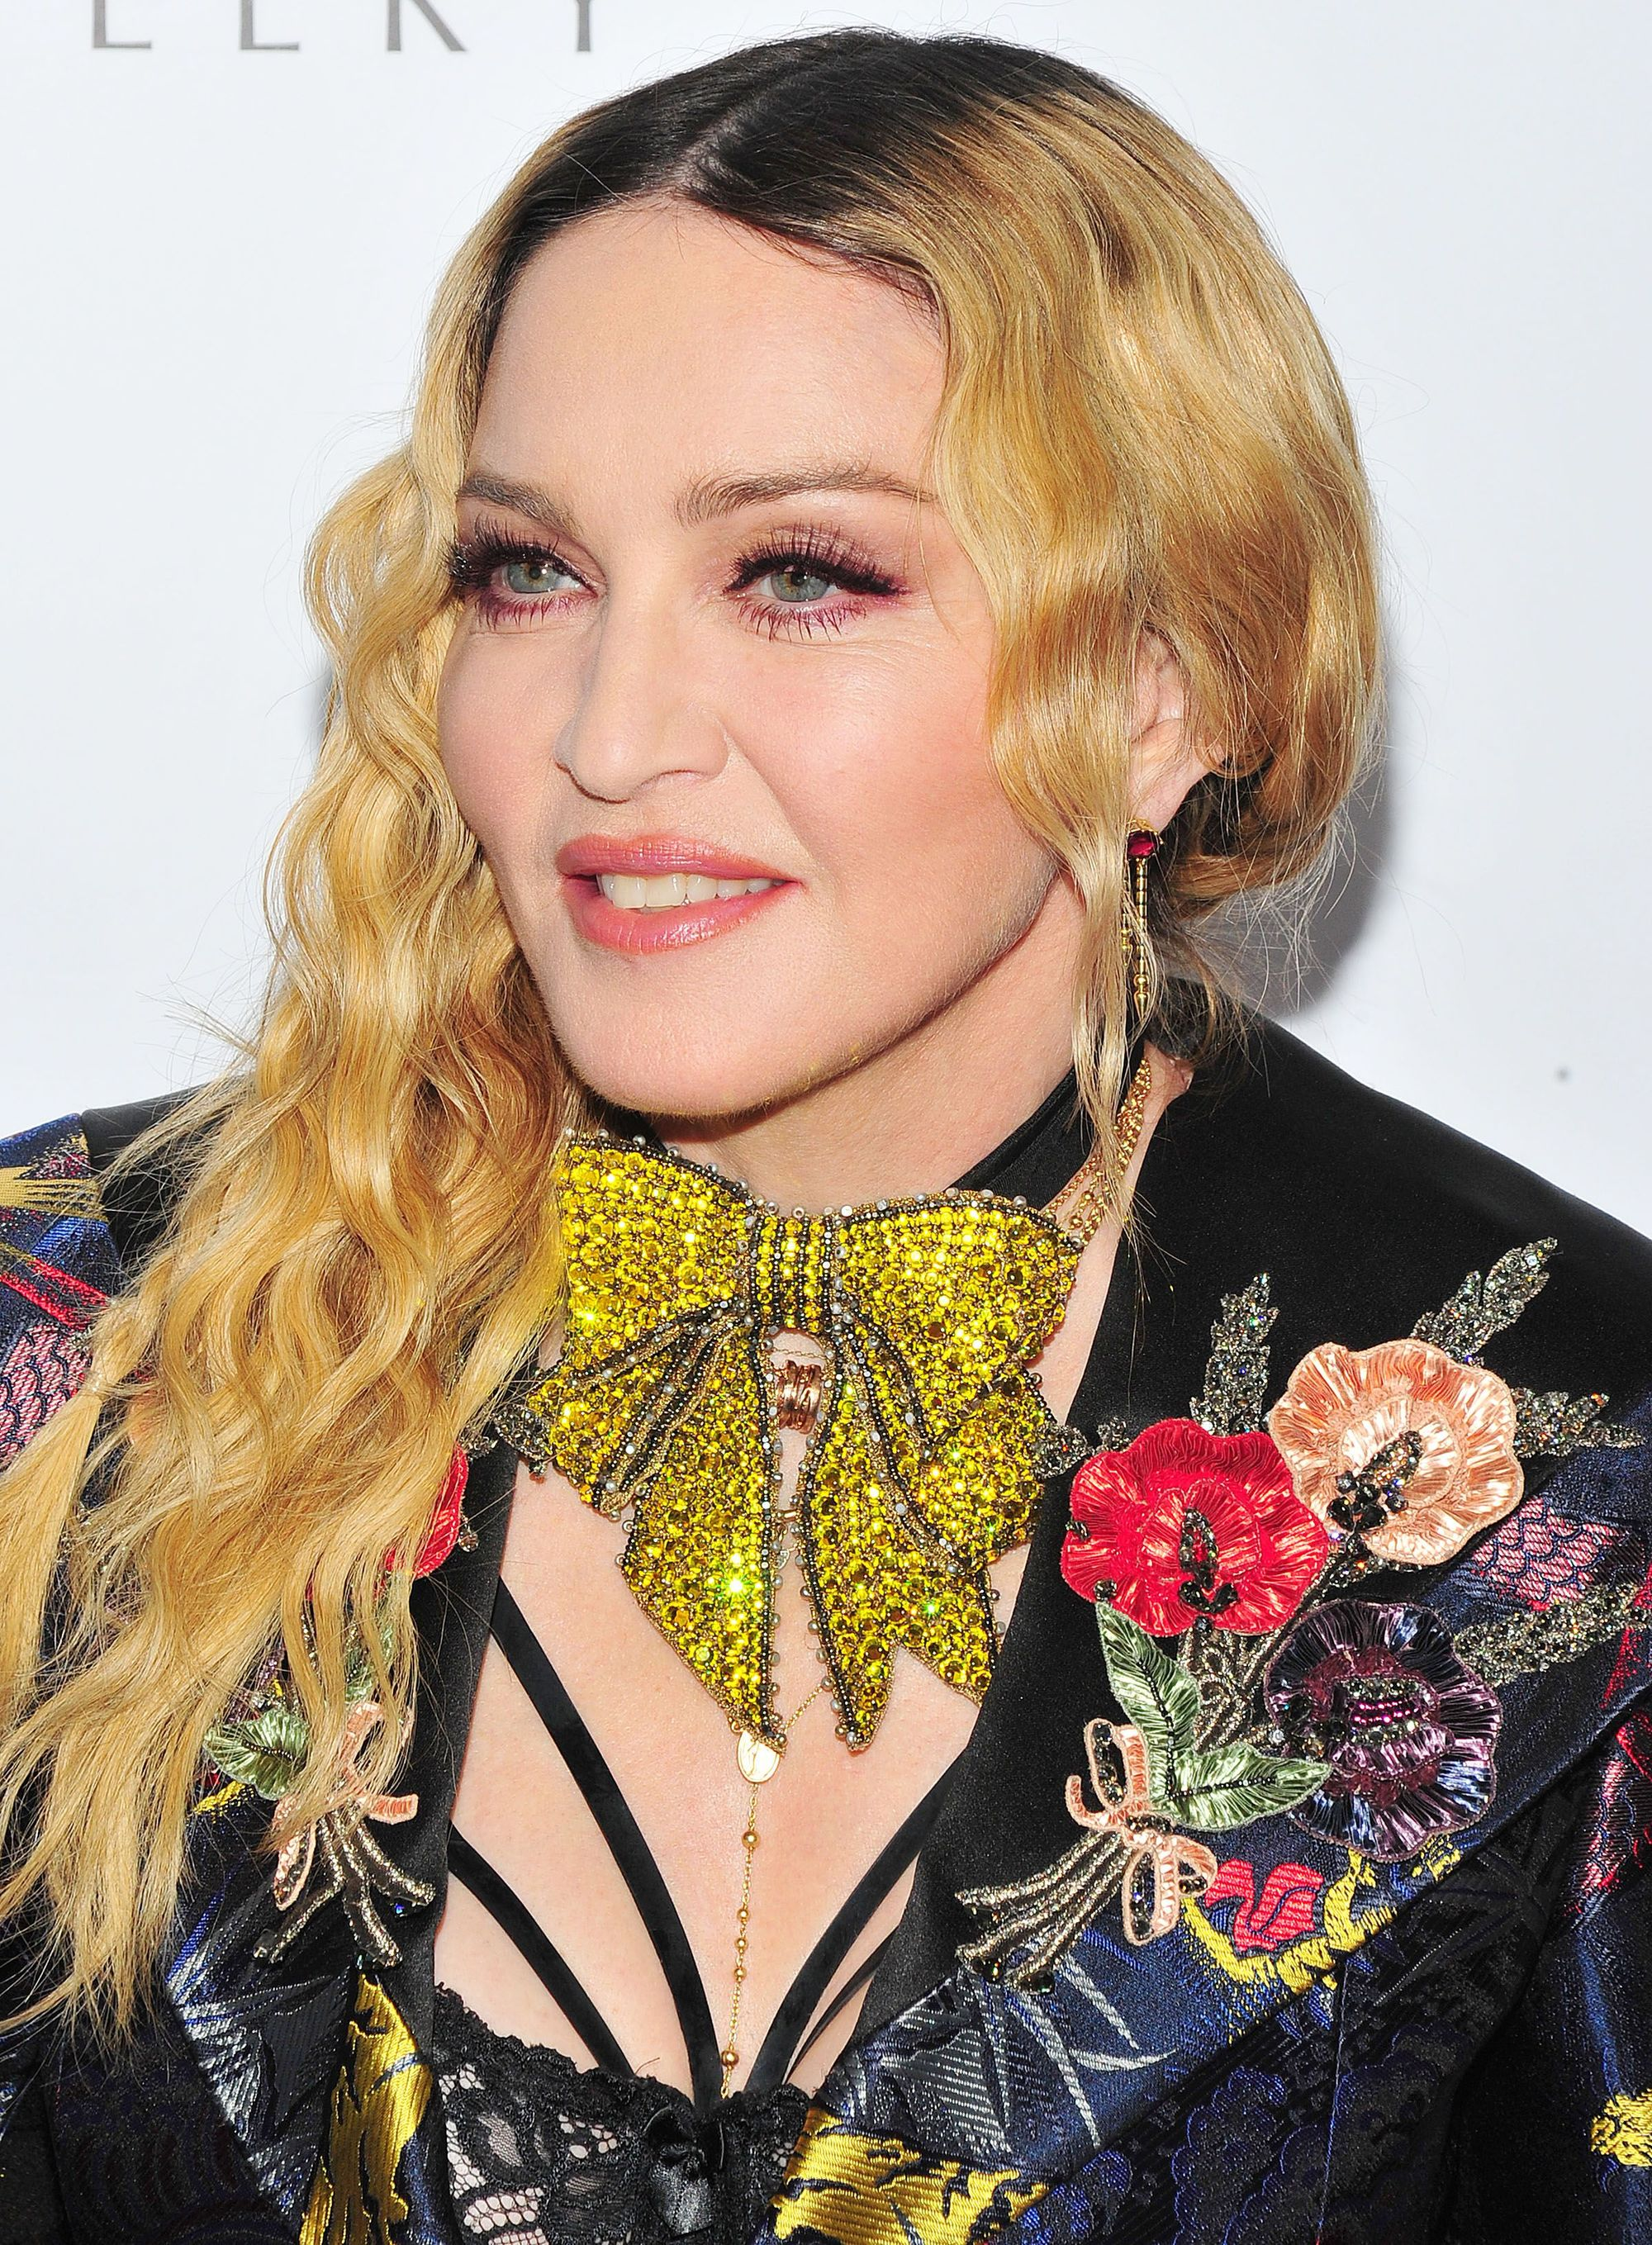 Madonna on the red carpet in 2016 with long blonde wavy hair swept over one shoulder.